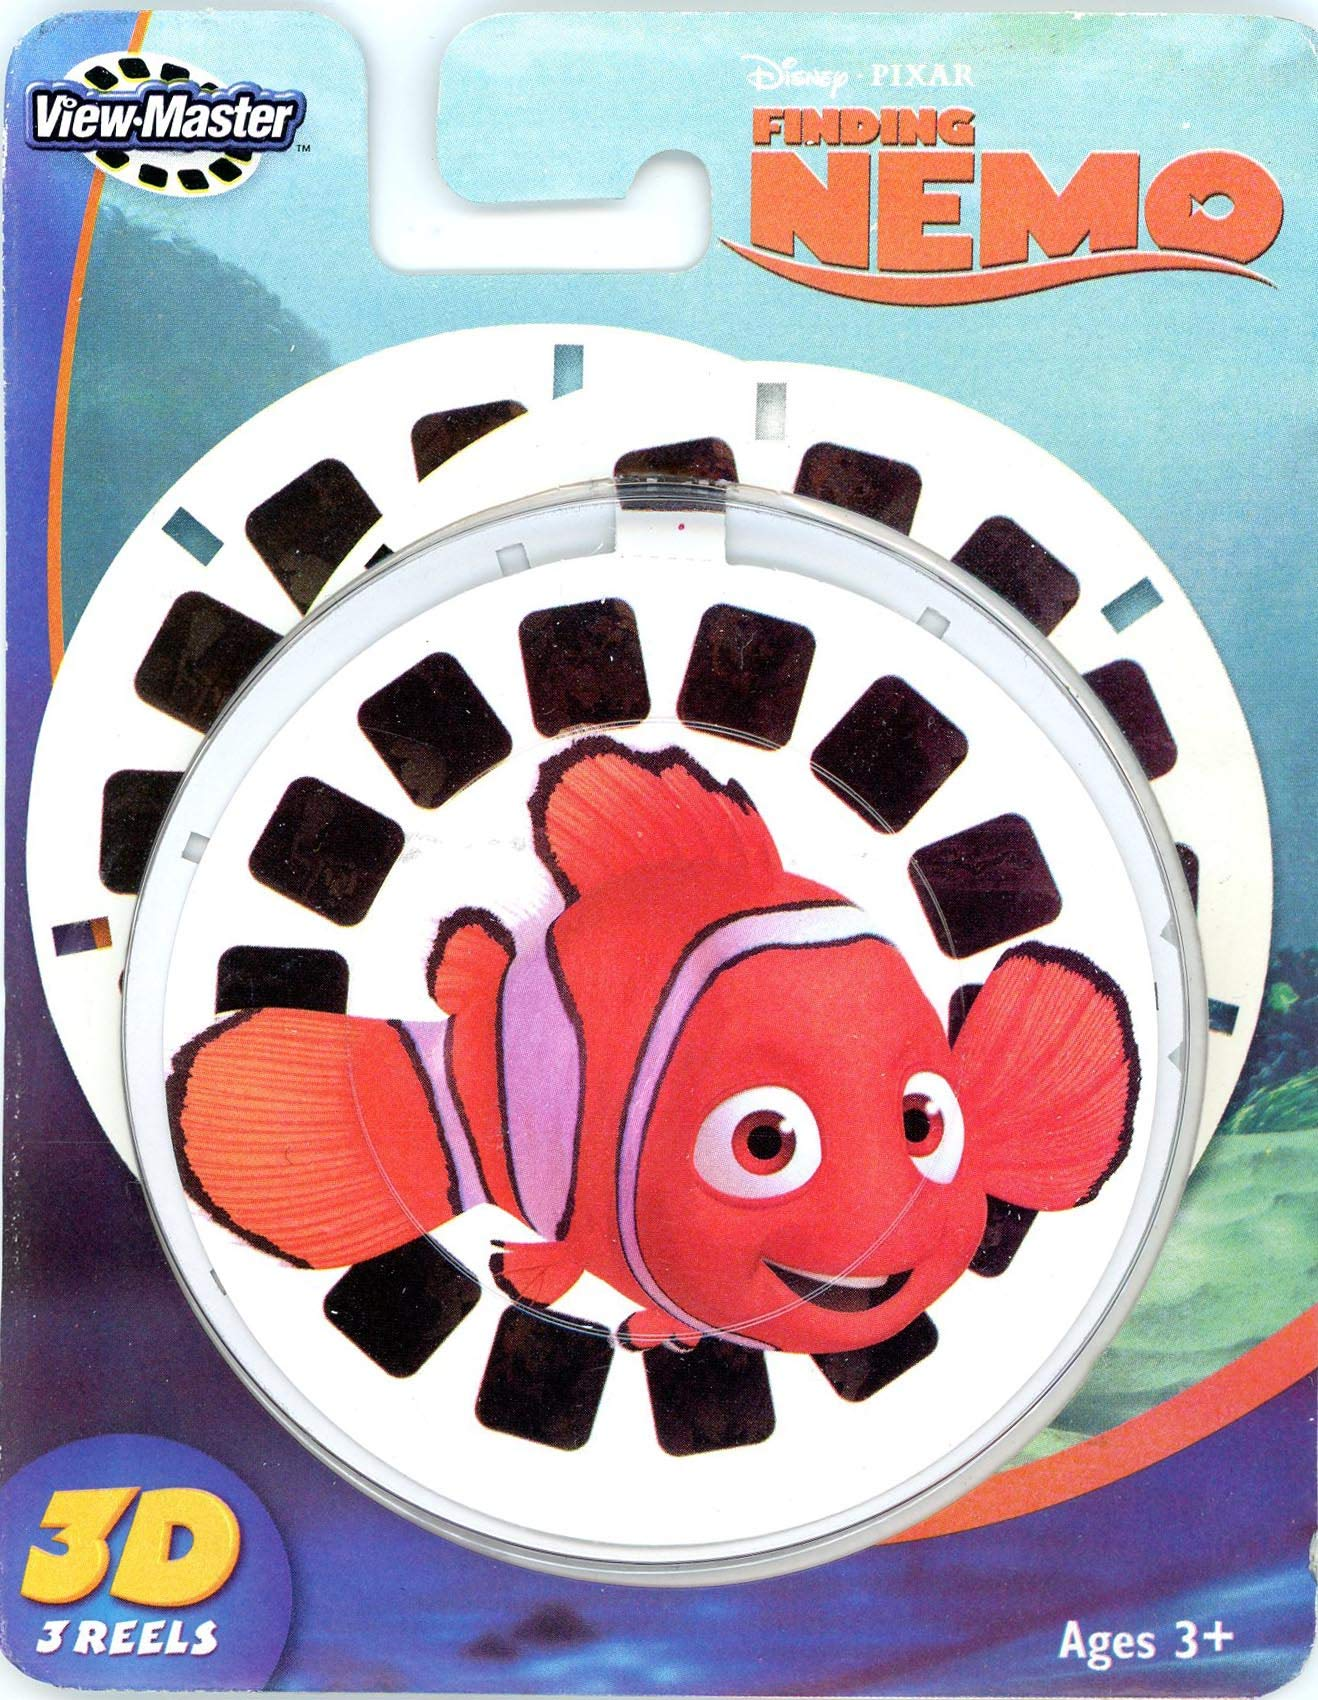 ViewMaster 3D Reels - Disney Pixar Finding Nemo set by View Master